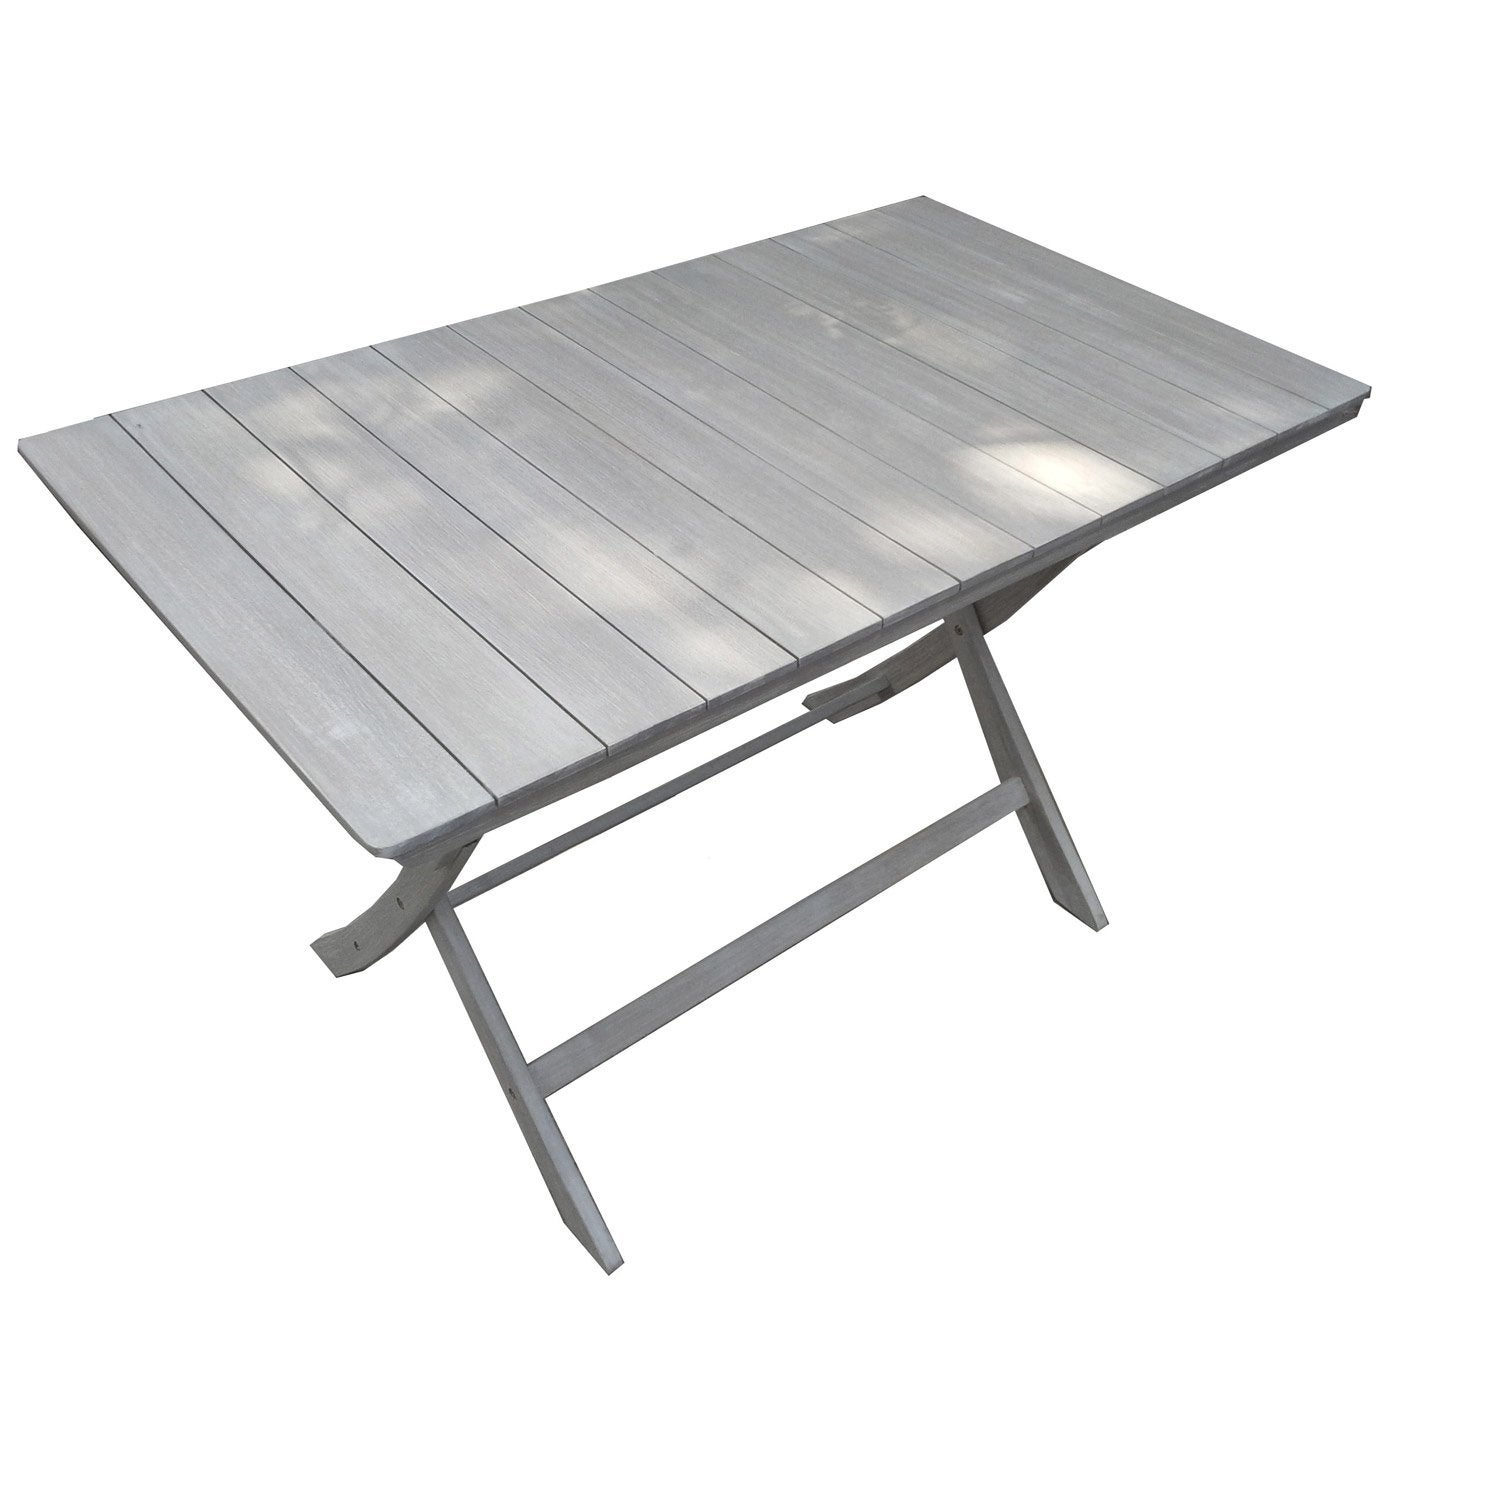 Table de jardin naterial portofino rectangulaire gris 4 for Bache de table de jardin